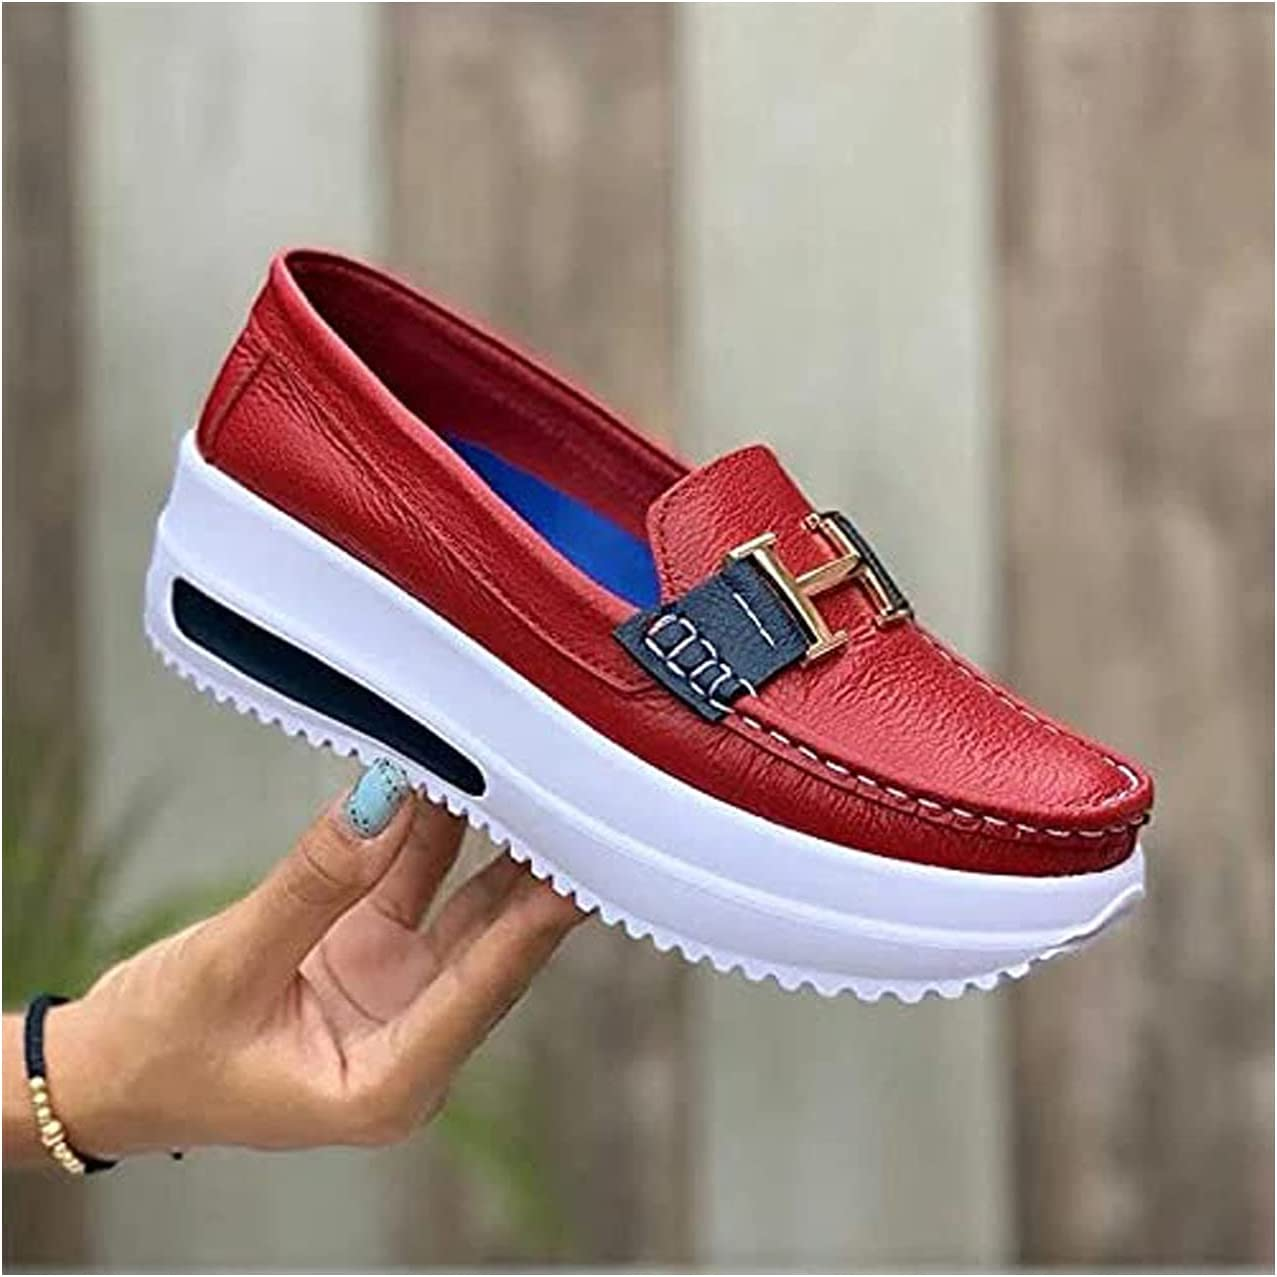 Women's Single Shoes Fashion Loafers Casual Thick-Soled Long Beach Mall Flat 5% OFF Stu